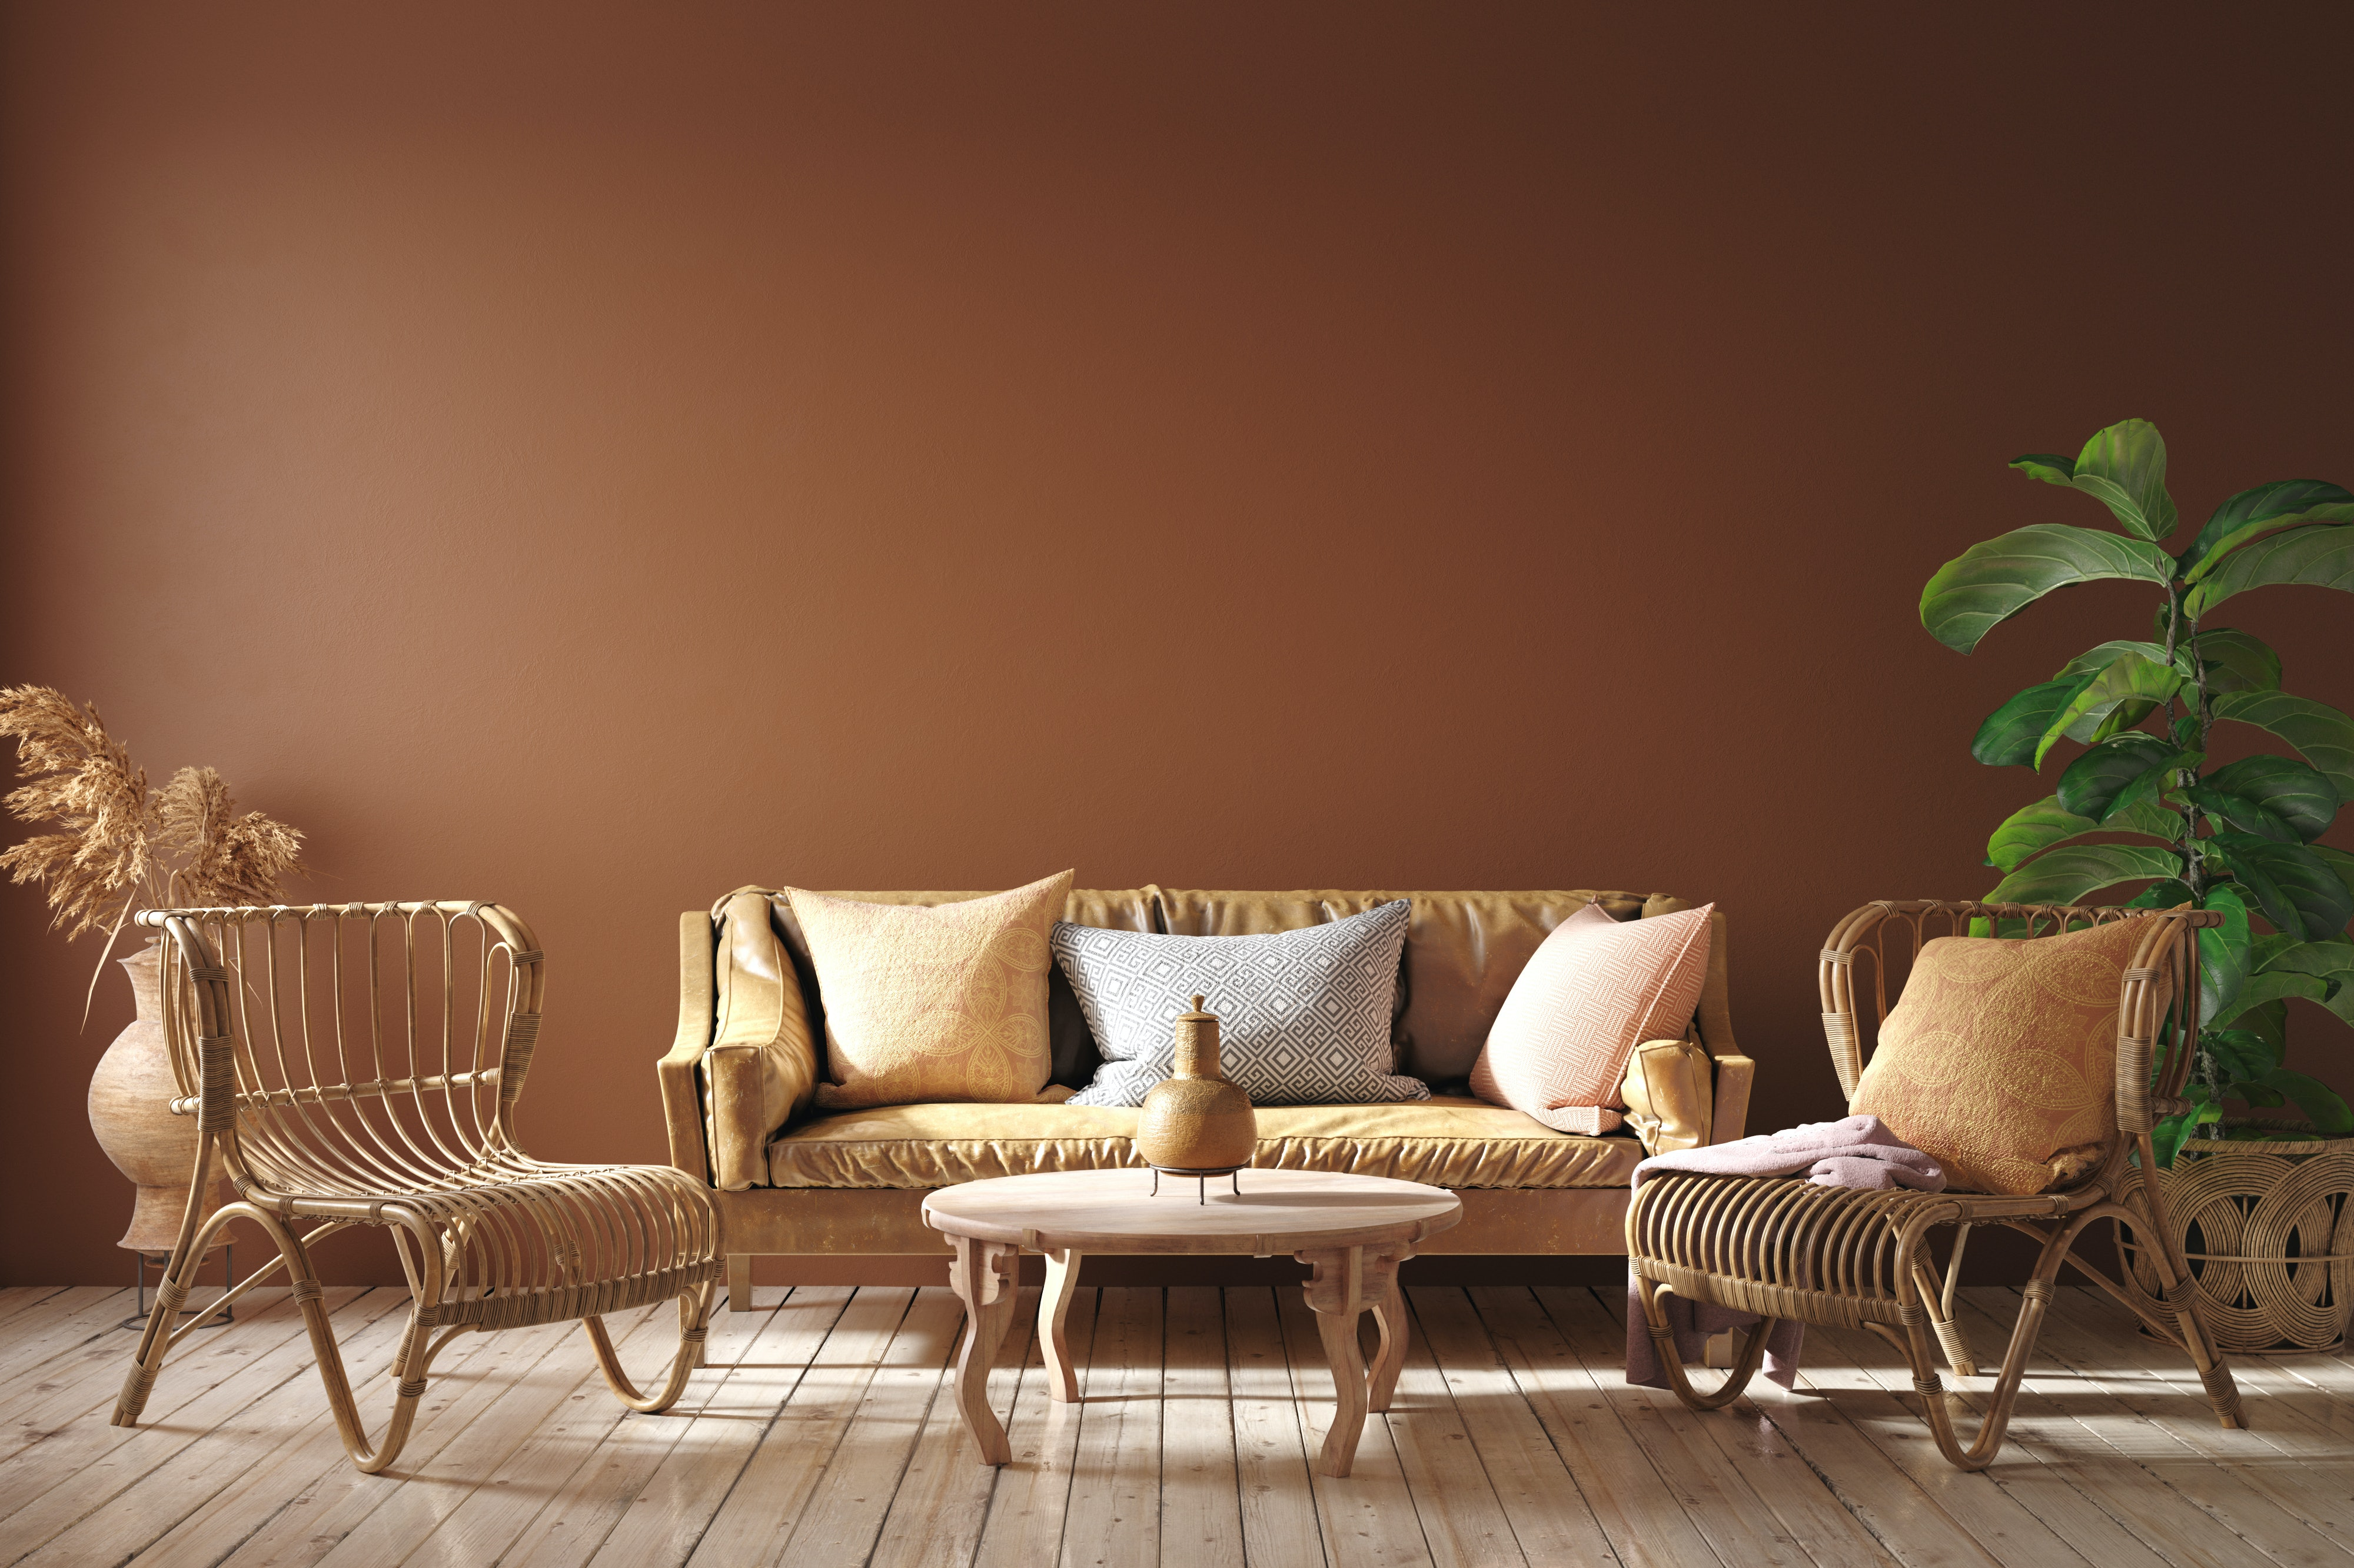 2021 Paint Trends To Try Now For A Freshened Up Interior